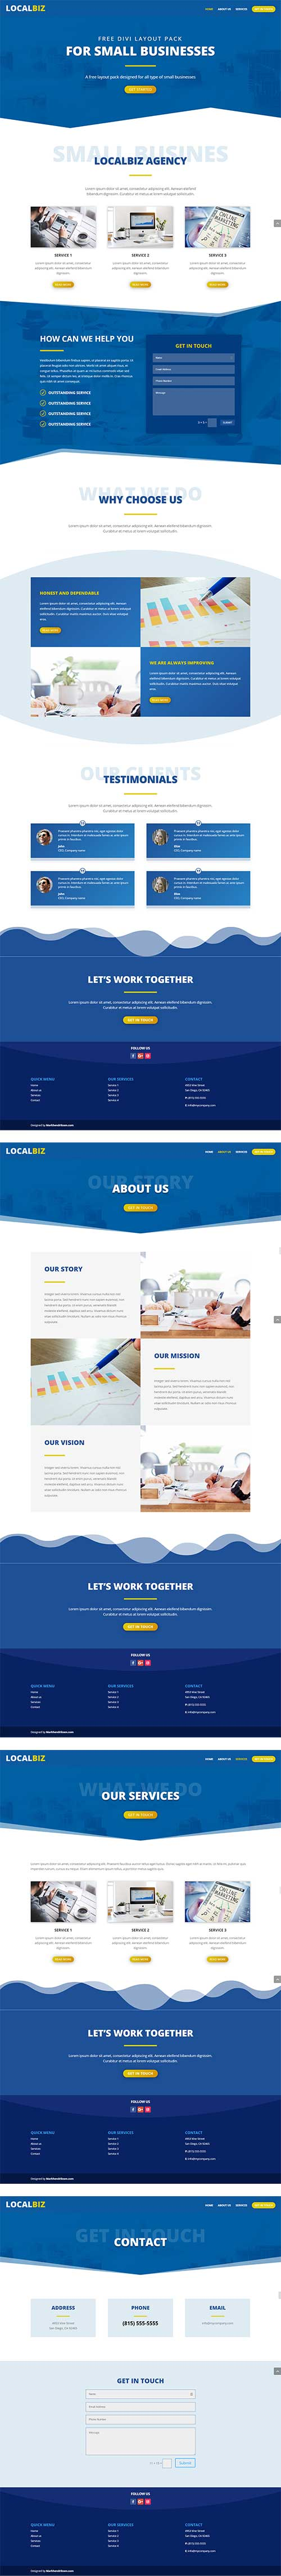 free small business layout pack